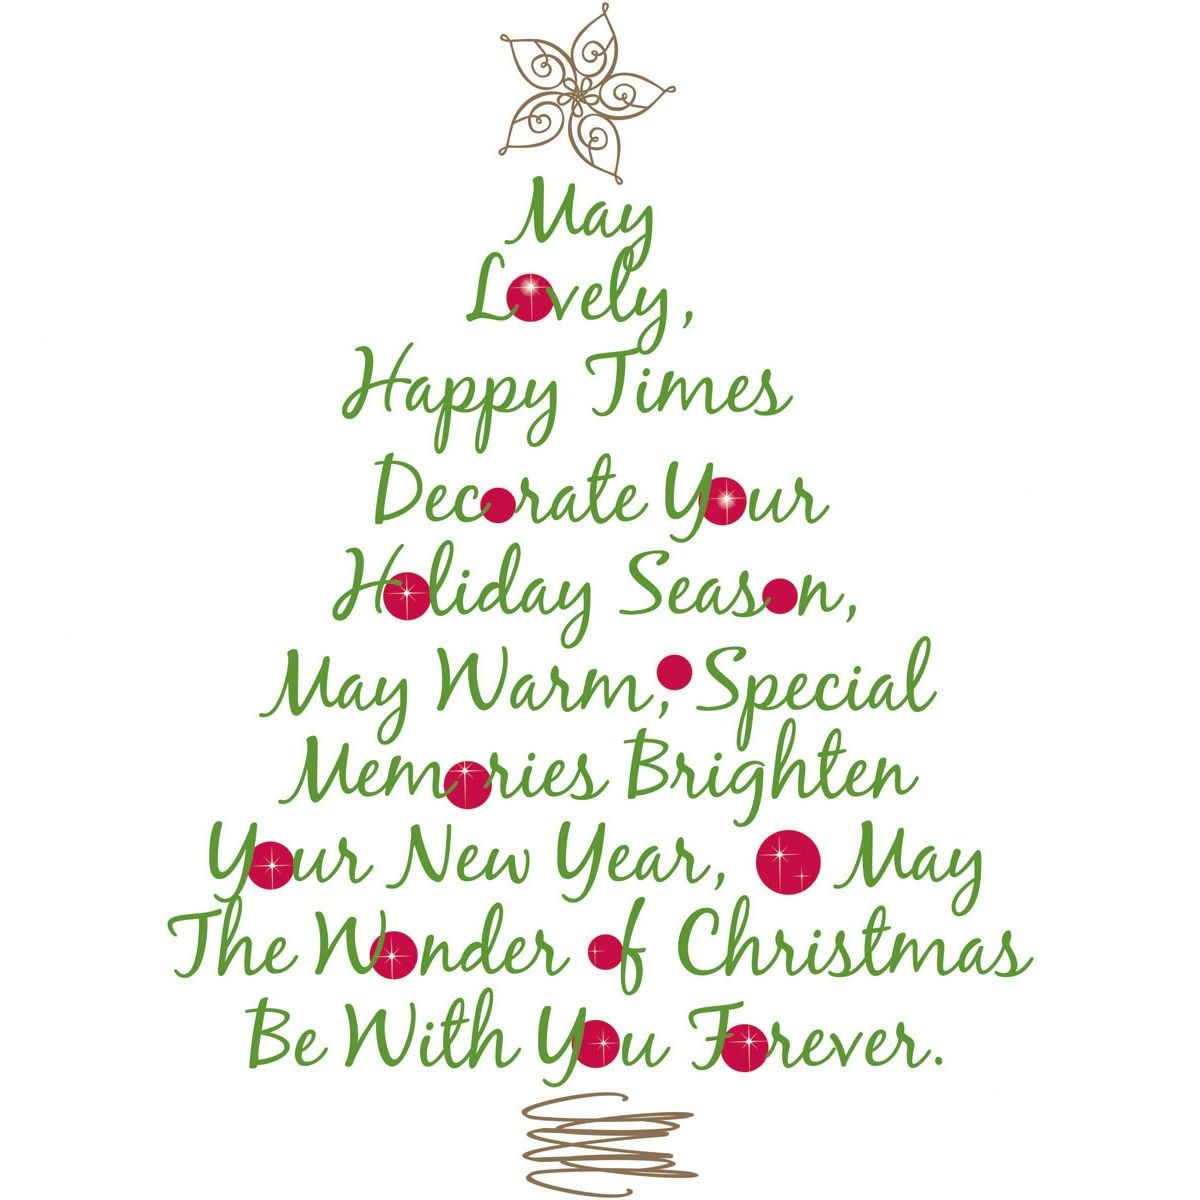 Christmas Wish Christmas Tree Quotes Christmas Poems Merry Christmas Quotes